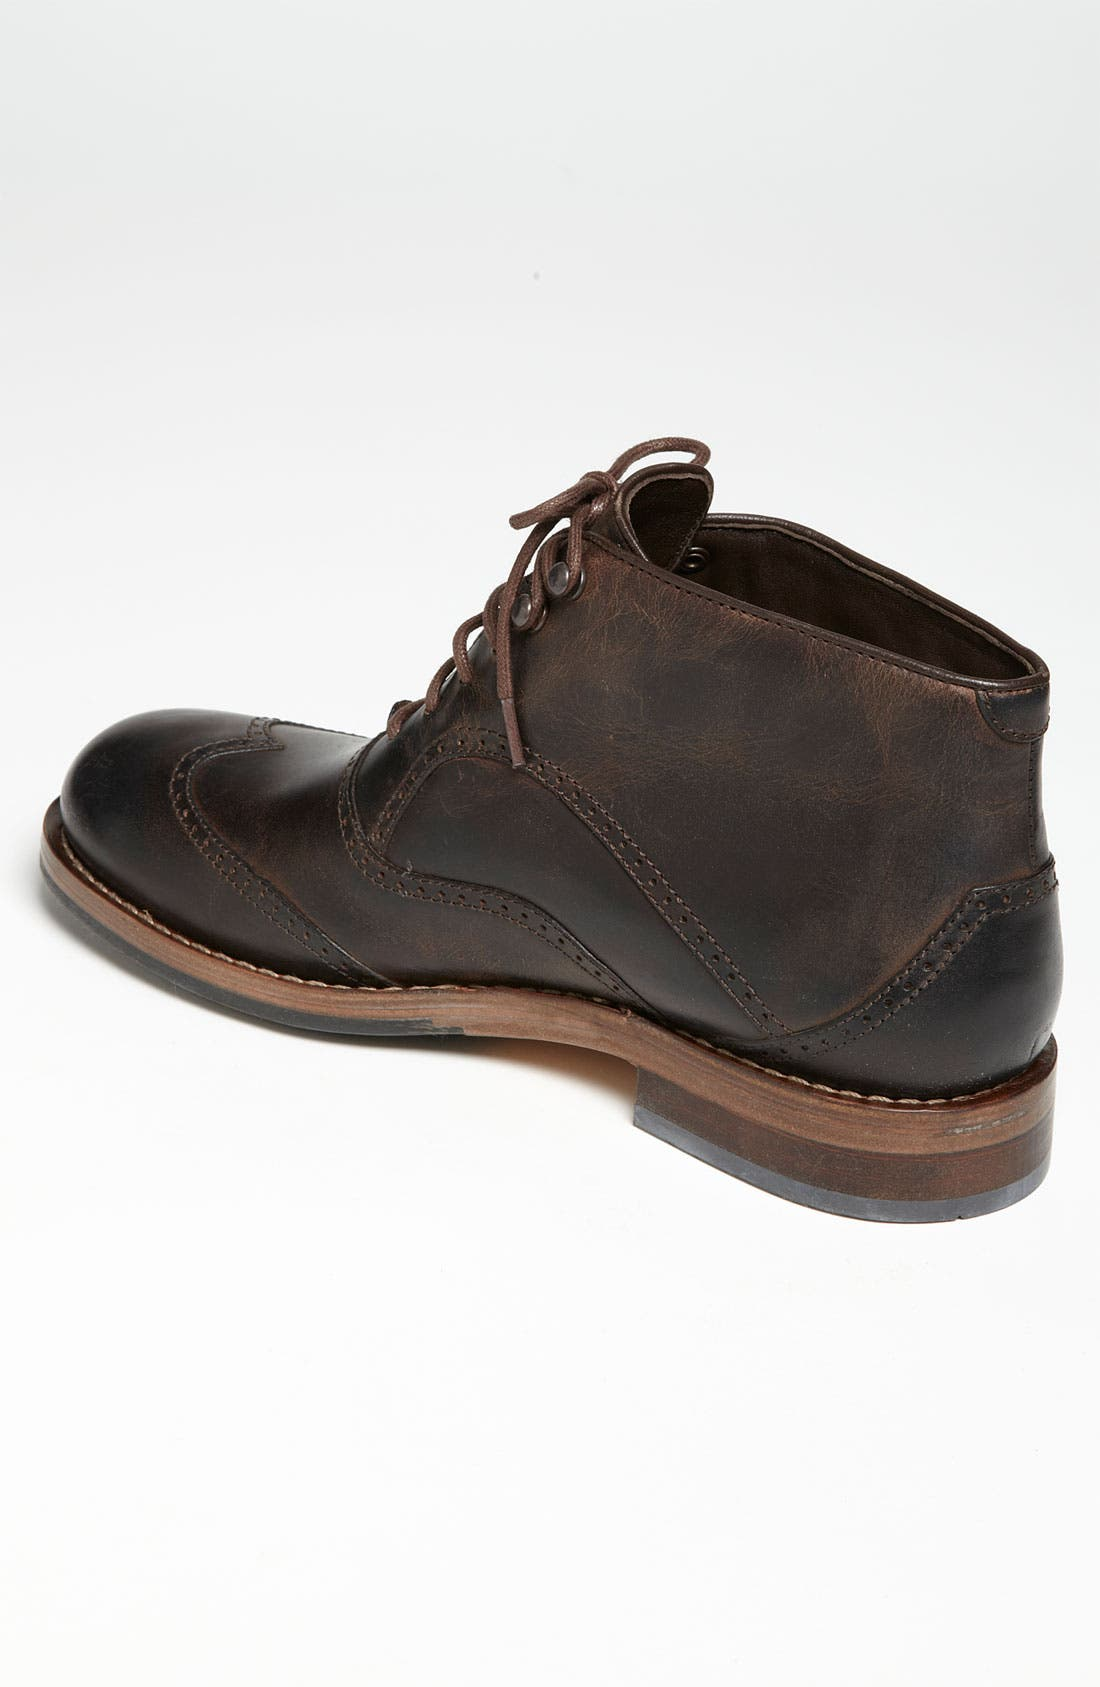 Alternate Image 2  - Wolverine 'Wesley' Chukka Boot (Regular Retail Price: $294.00)